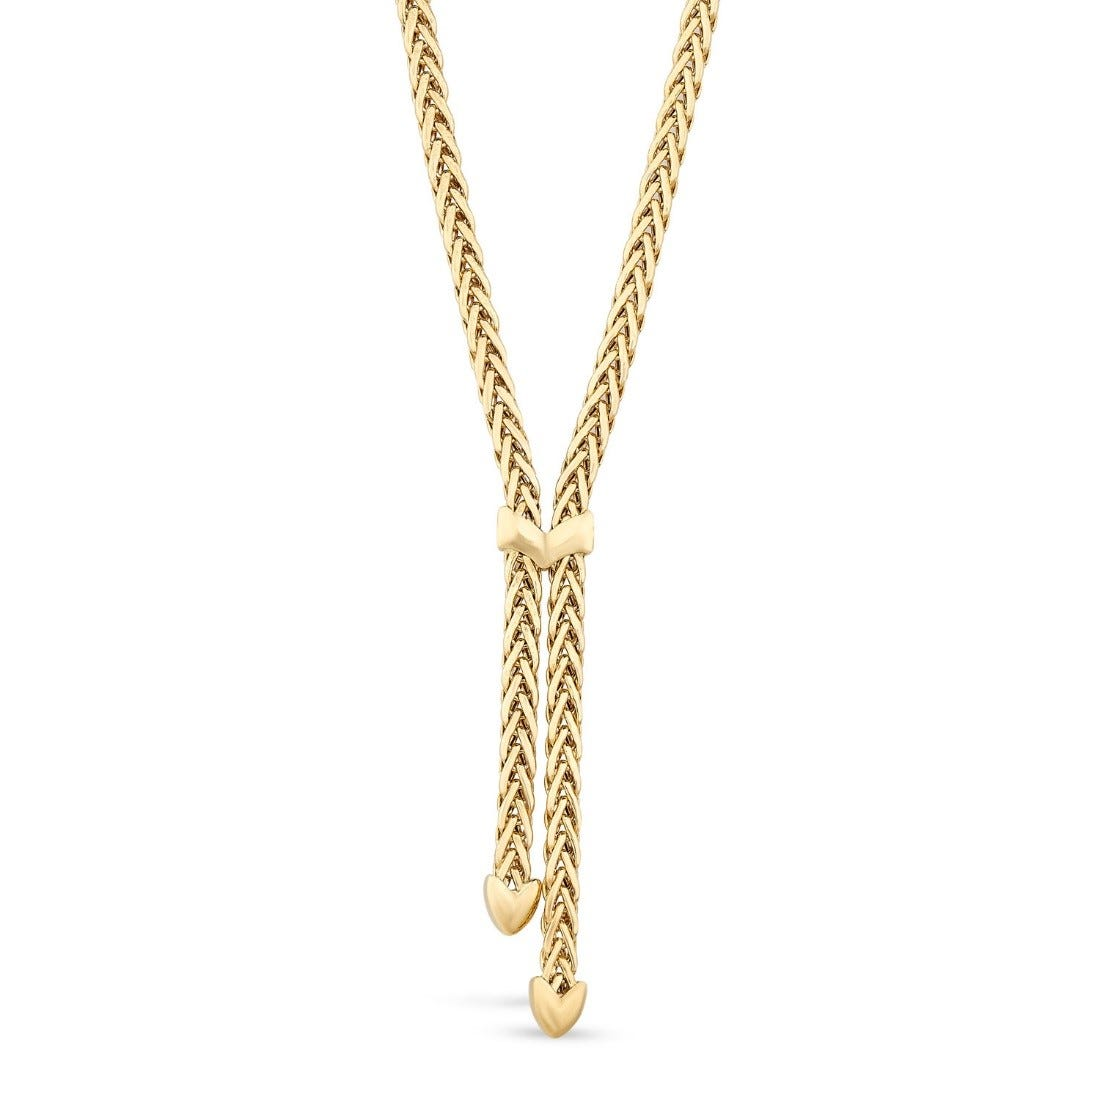 9ct Yellow Gold Herringbone Polished Tassel Necklet